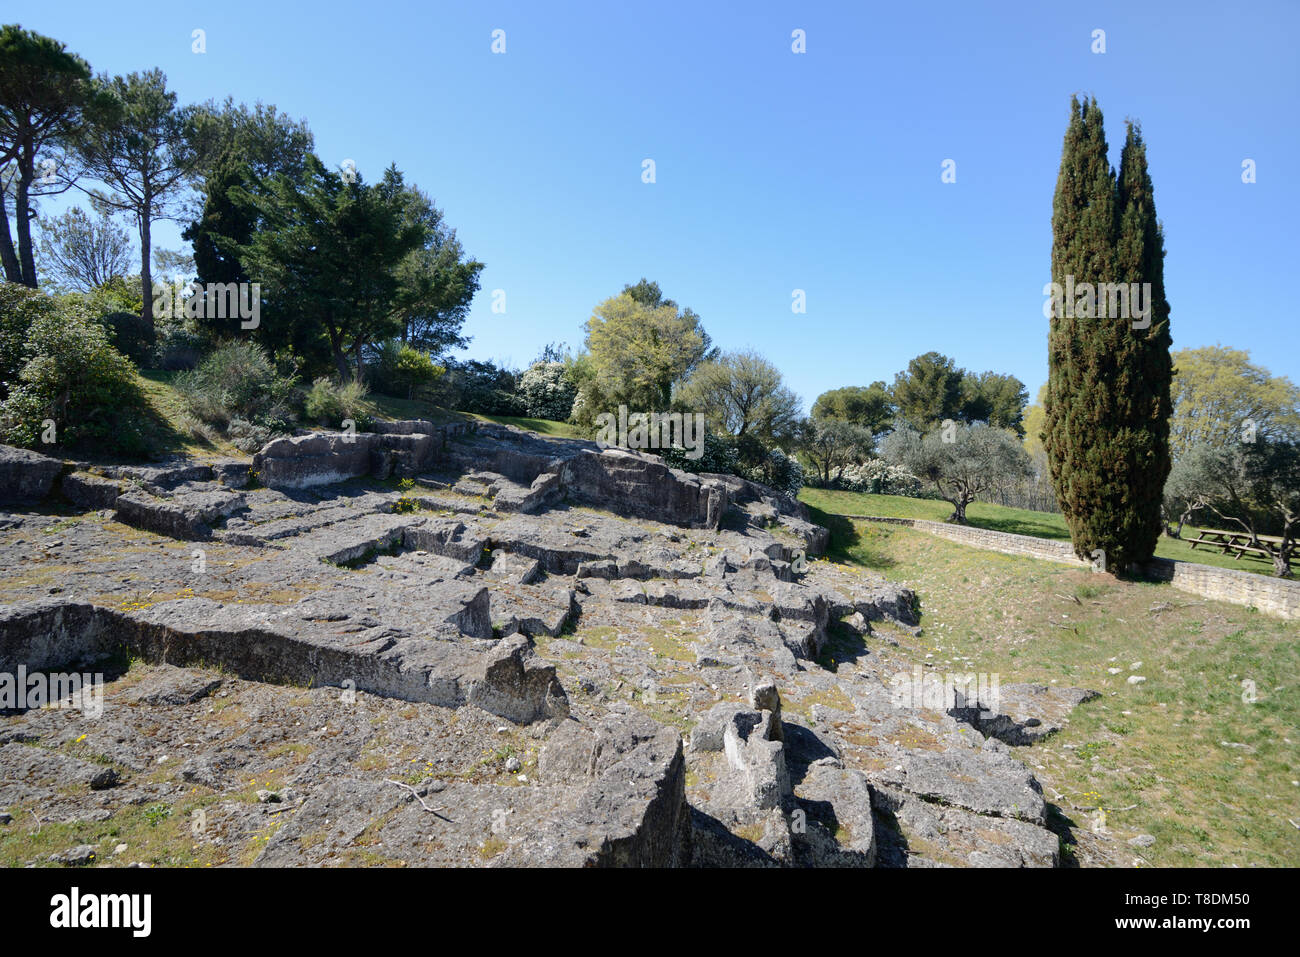 Ancient Roman Stone Quarry or Marble Quarry in the Ancient Roman City or Town of Glanum Saint Rémy-de-Provence Provence France - Stock Image